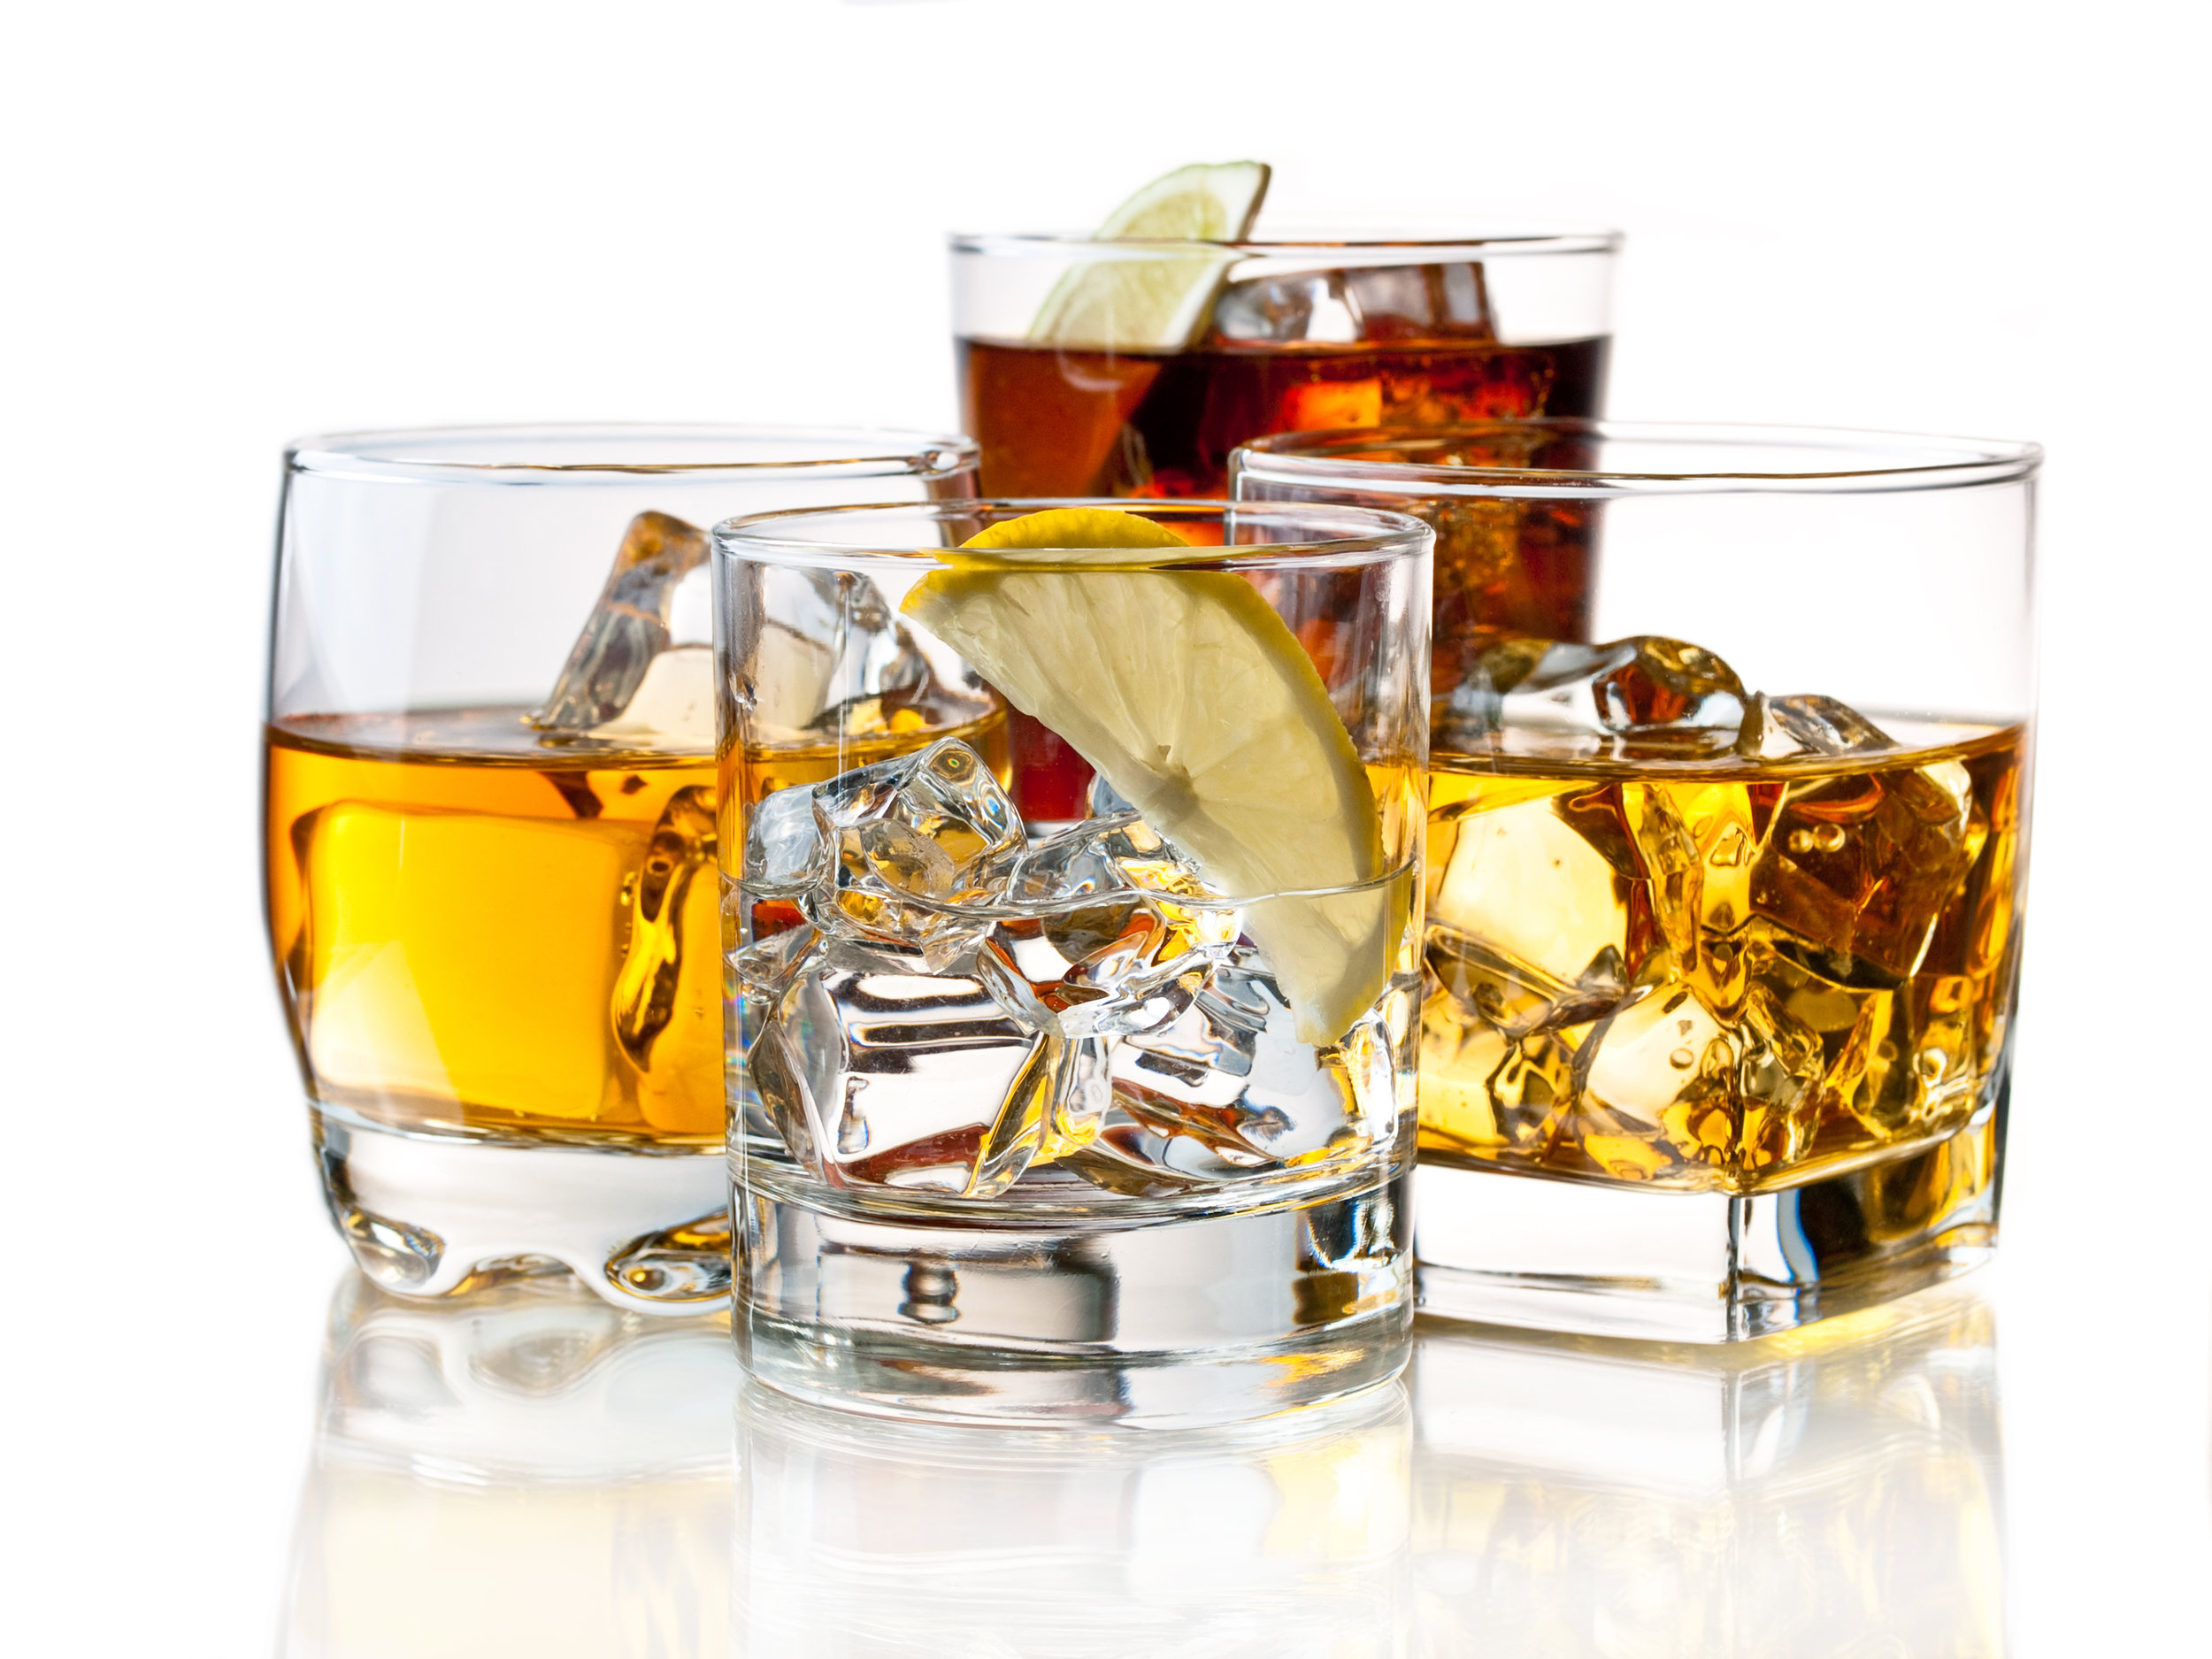 Alcoholic drinks shutterstock_81949795.jpg